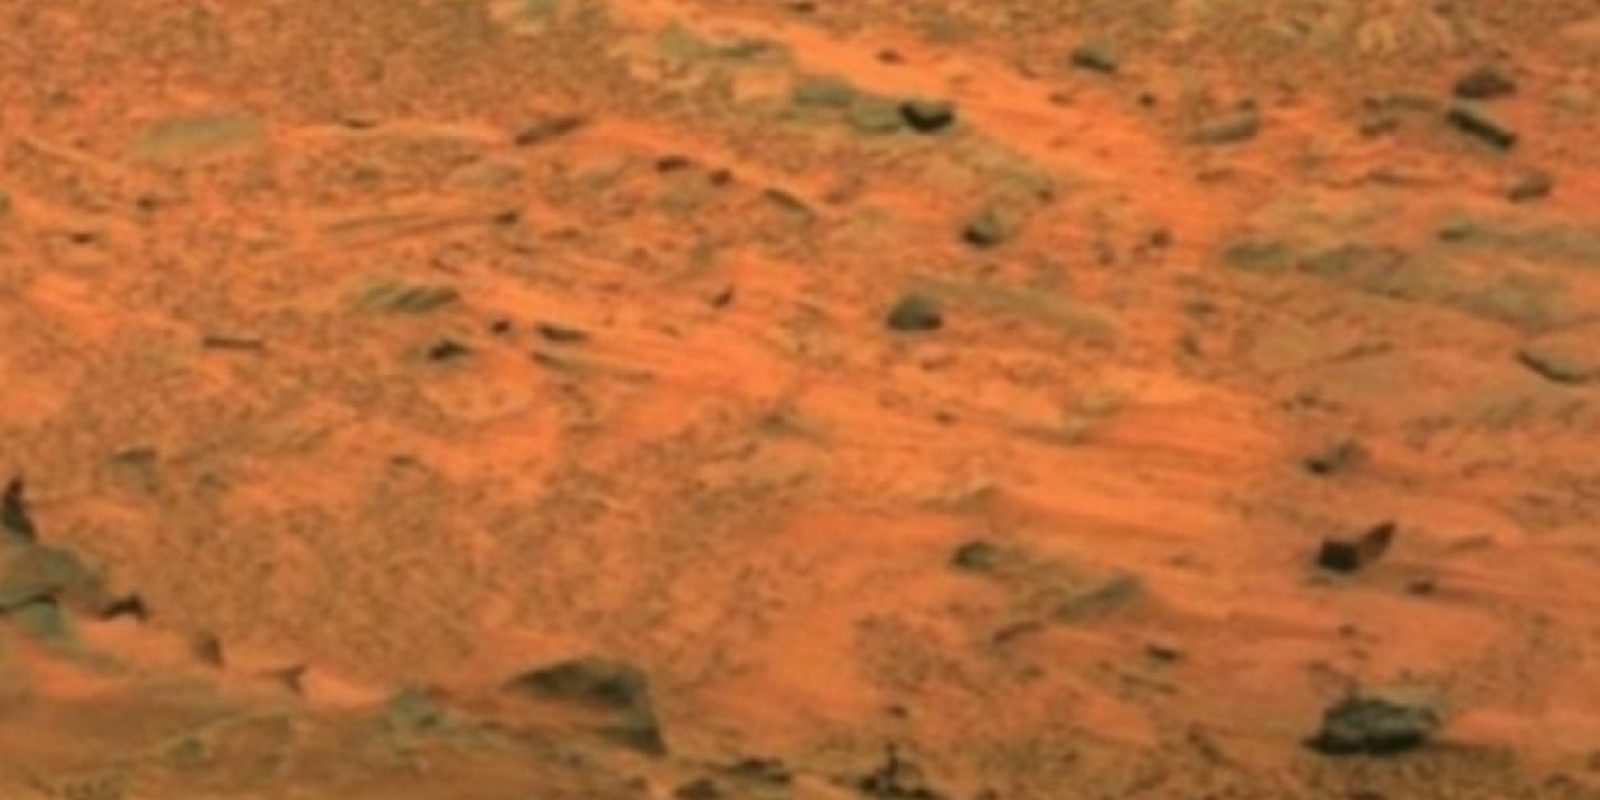 Foto: original http://photojournal.jpl.nasa.gov/jpeg/PIA10214.jpg